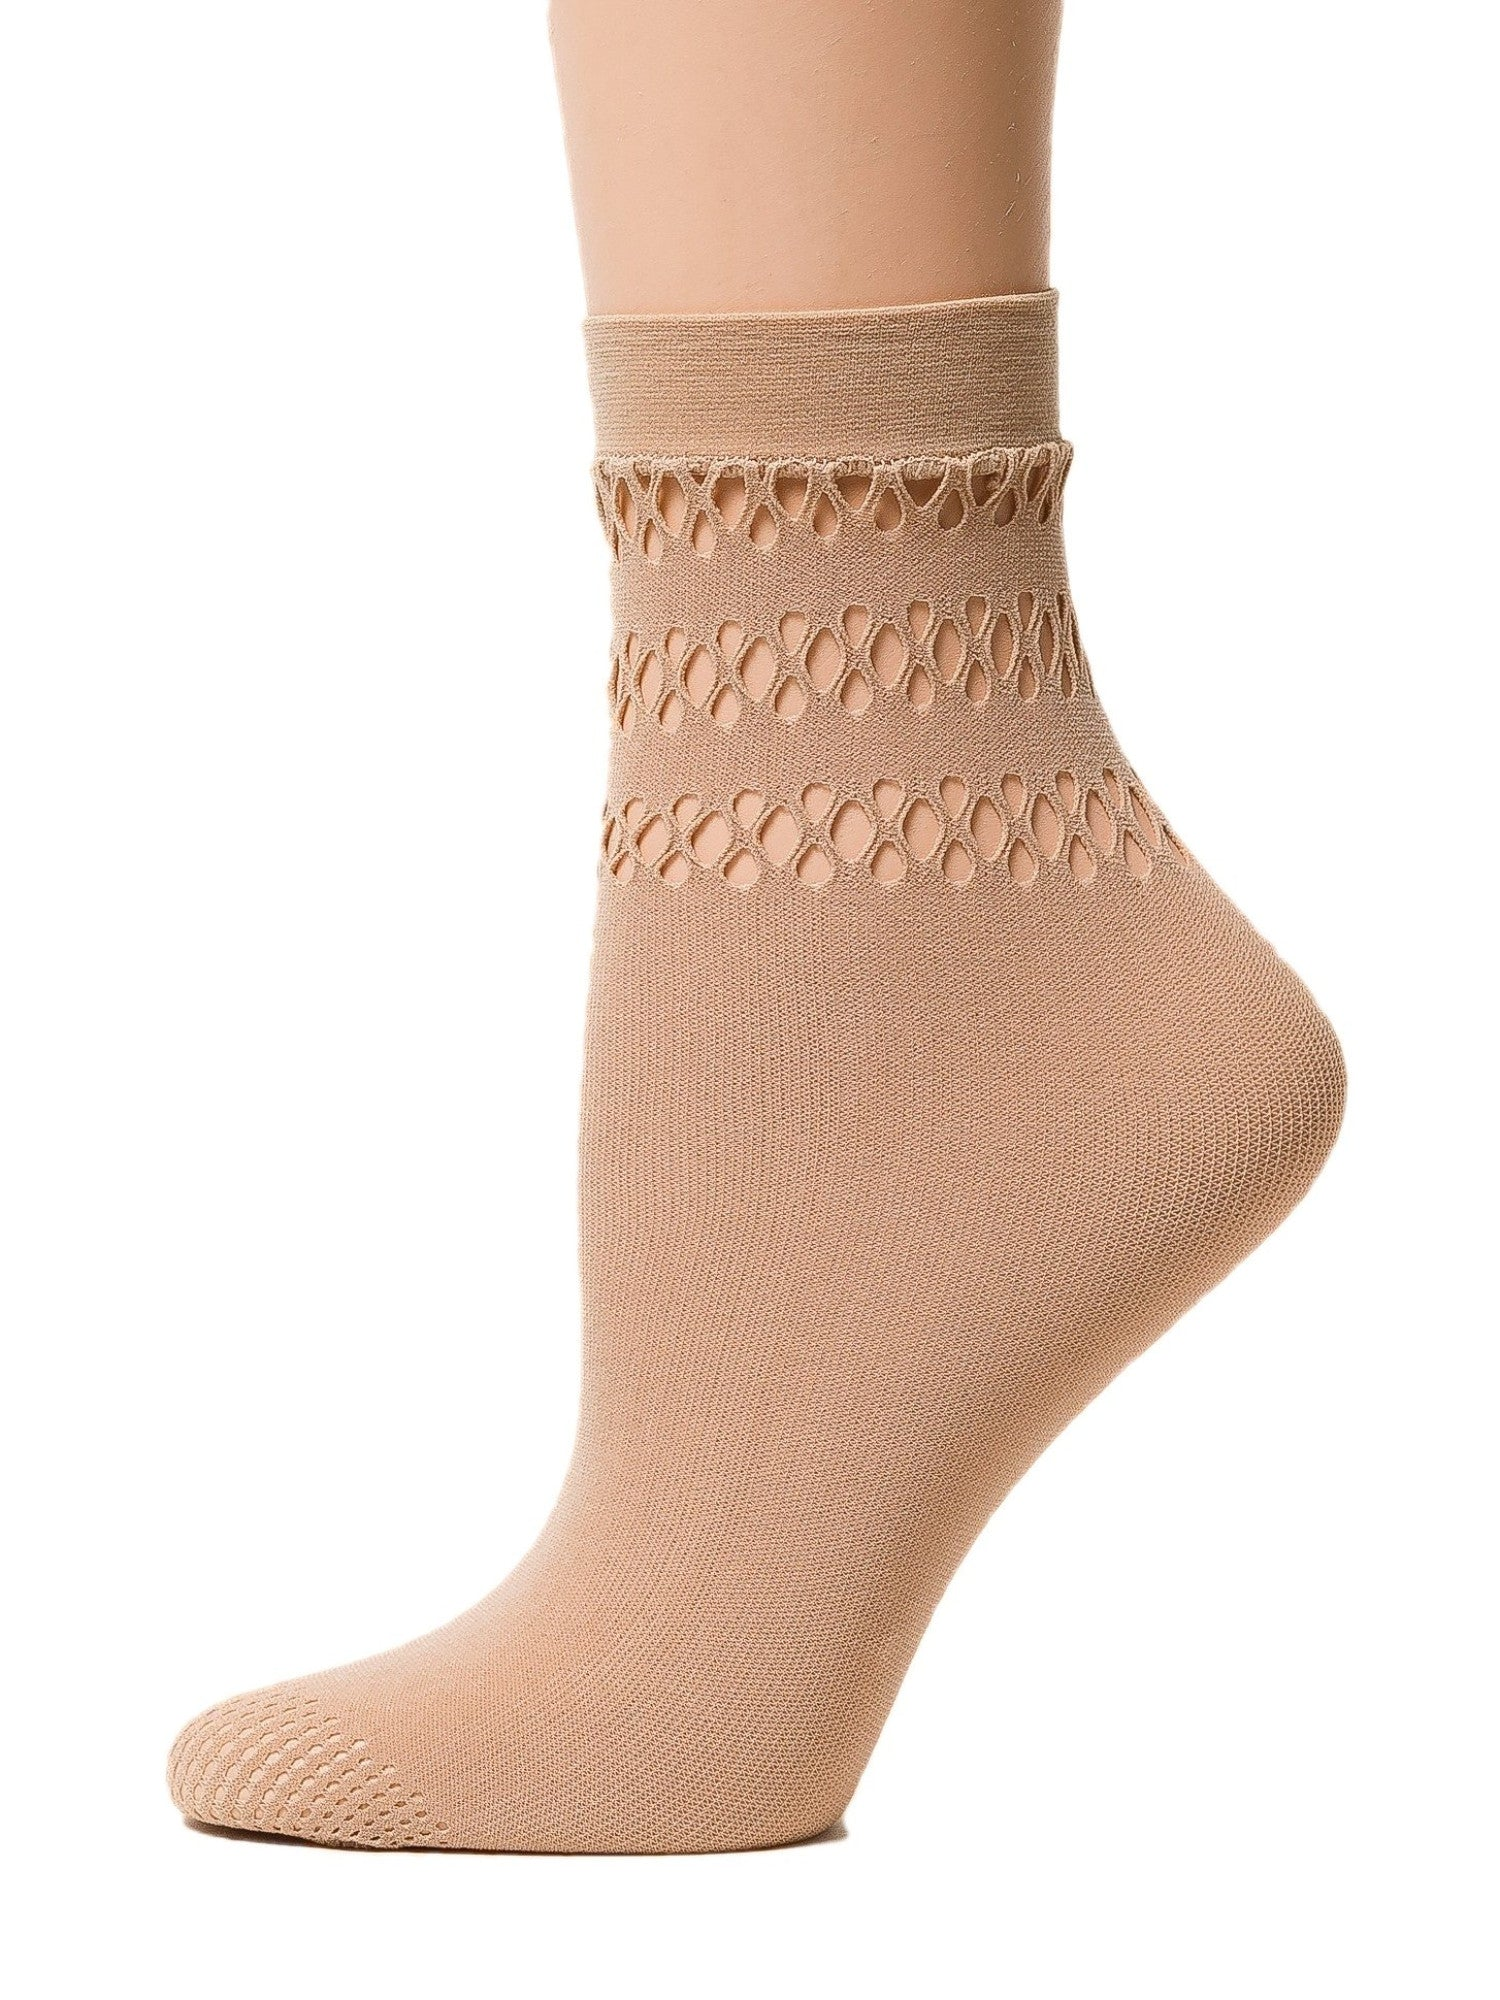 Trendy Beige Mesh Socks - Global Trendz Fashion®